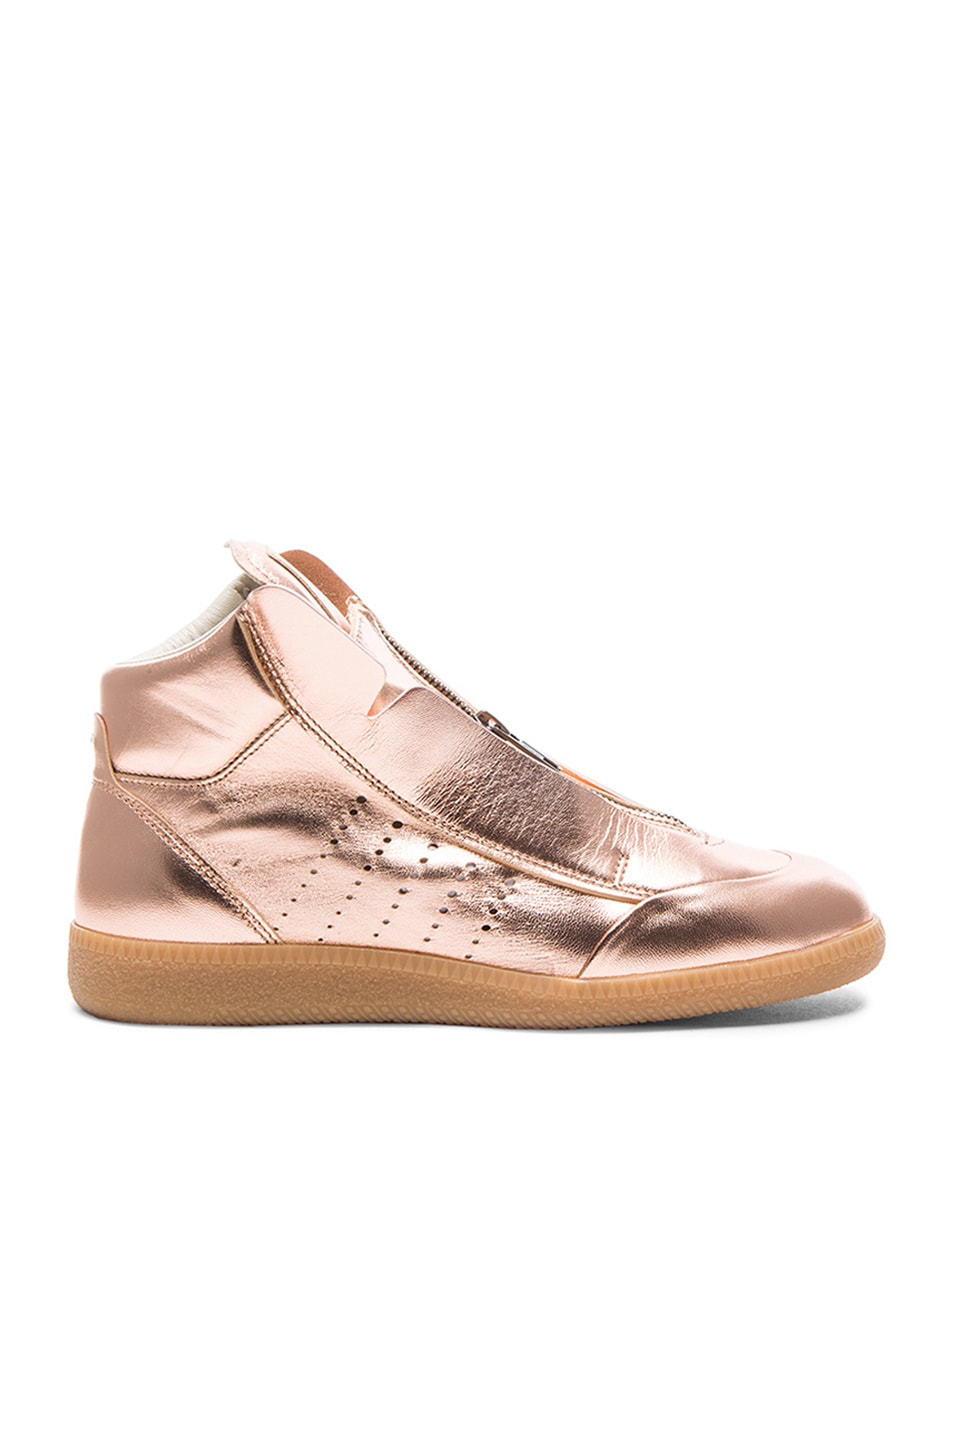 Image 1 of Maison Margiela Laminated Leather Circuit Sneakers in Copper